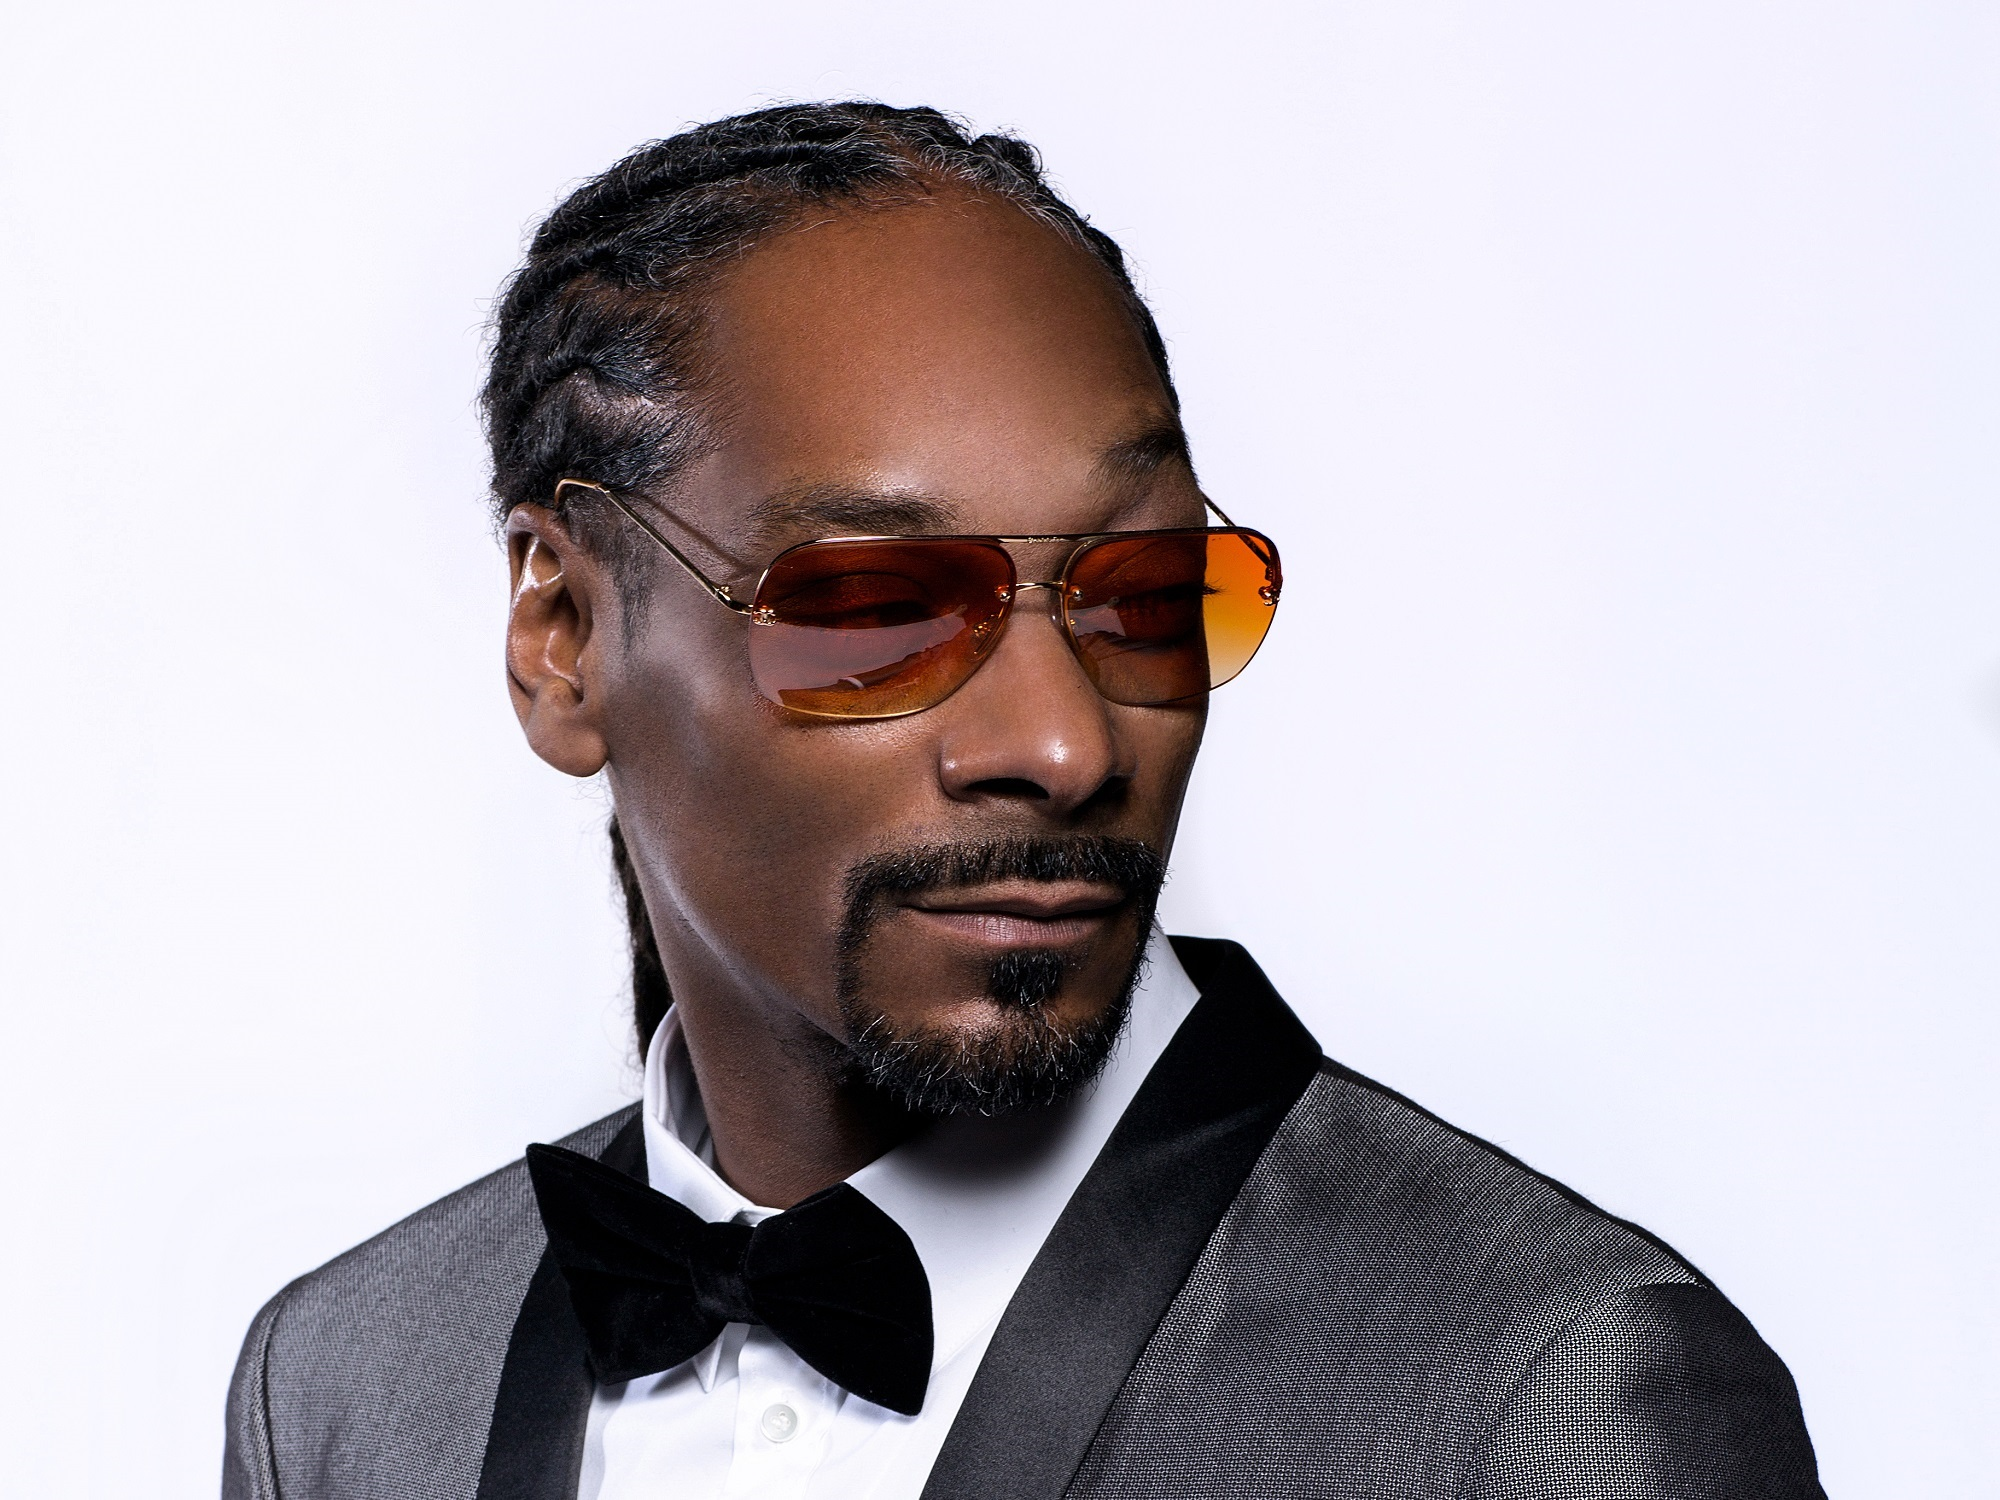 Snoop Dogg Will Receive A Star On The Hollywood Walk Of Fame!